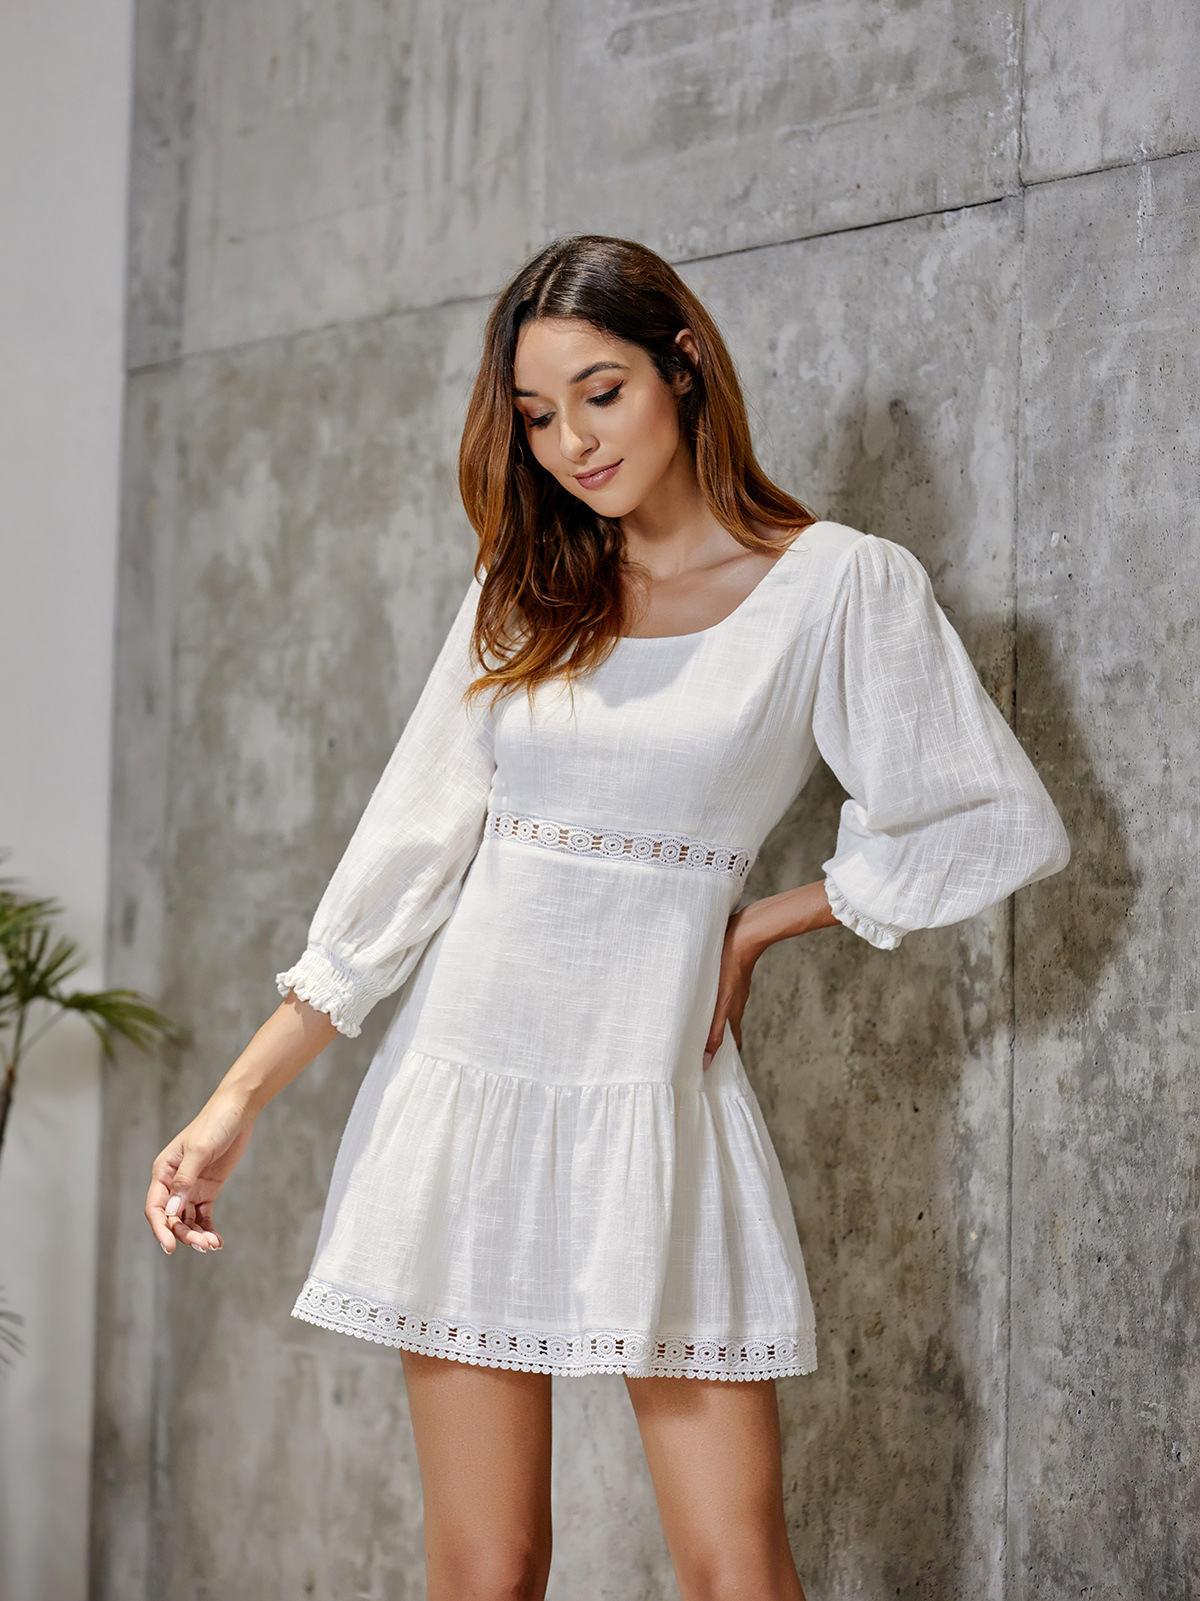 <font><b>AliExpress</b></font> Hot Sales-2019 Europe And America Autumn New Style Puff Sleeve Square Collar after Backless Cross Lace-up <font><b>Dress</b></font> Short image